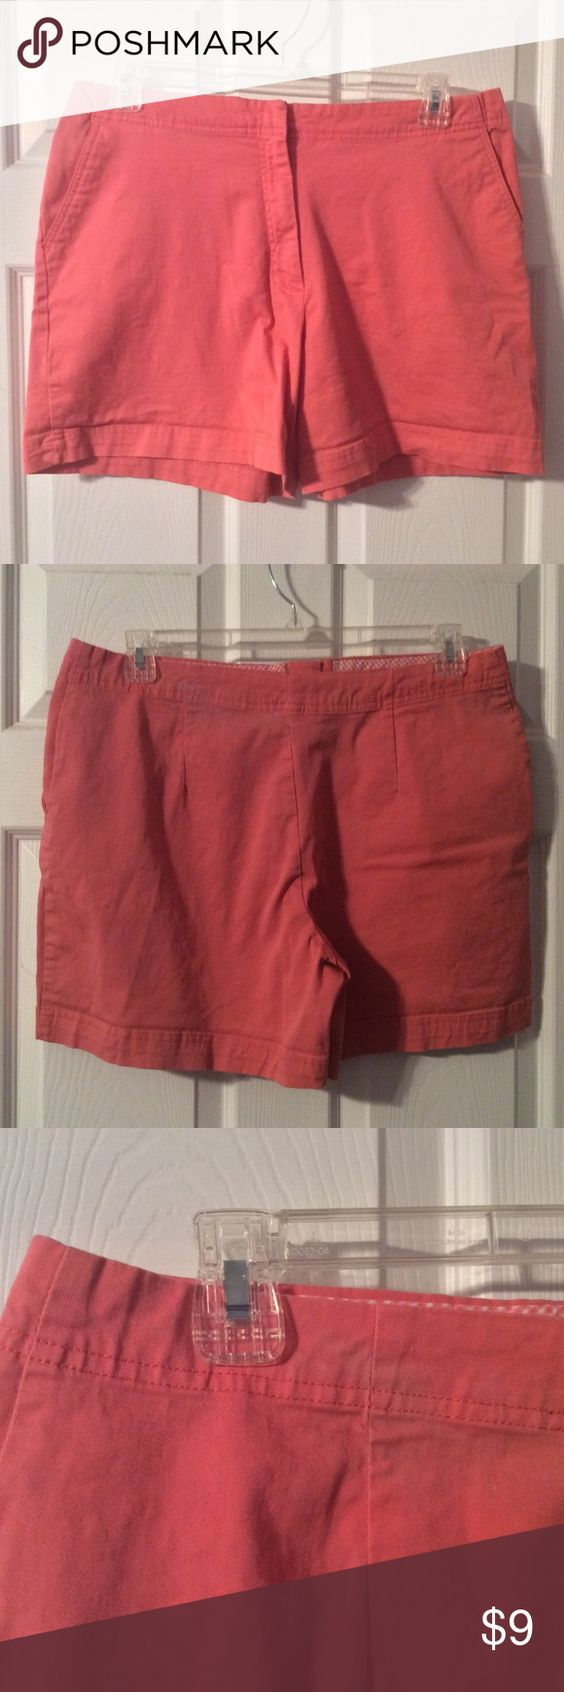 Duck Head SZ 18 Peach Shorts Duck Head shorts size 18, great company, working clasp and zipper, no stains or tears, only a small area of color fading, see pics, even that is vary noticeable, smoke free home. Always fast shipping! Offers welcome. Duck Head Shorts